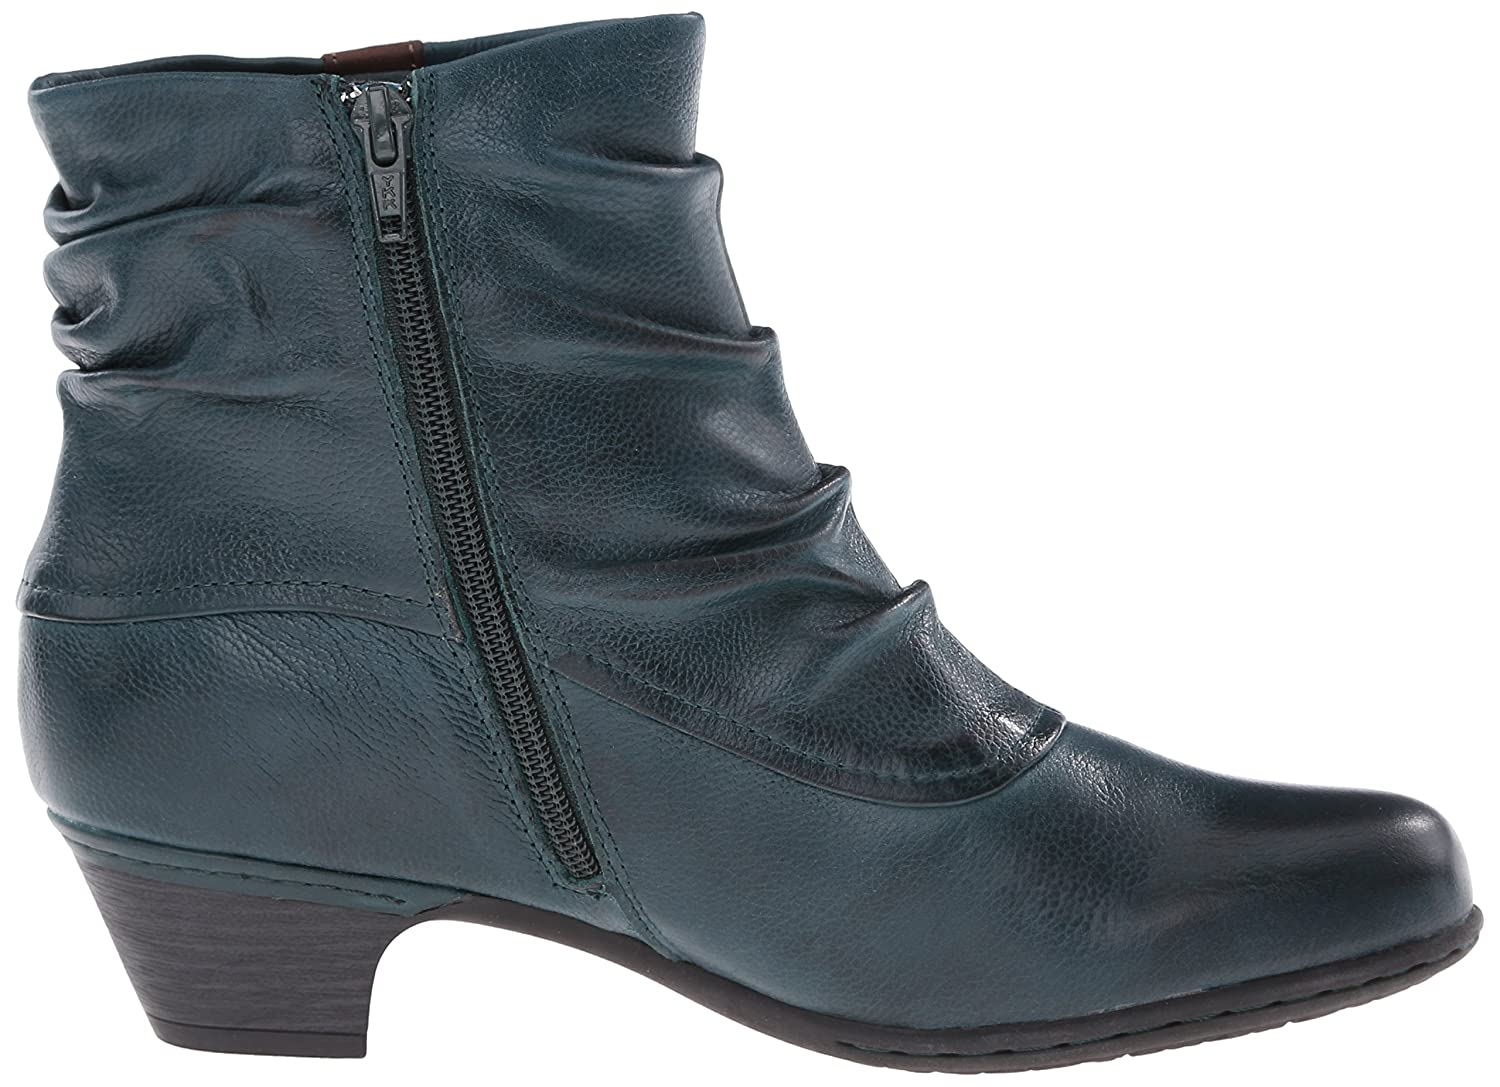 Cobb Boot Hill Rockport Women's Alexandra Boot Cobb B00MHLOEFC 7 N US|Blue Teal b3f8dc